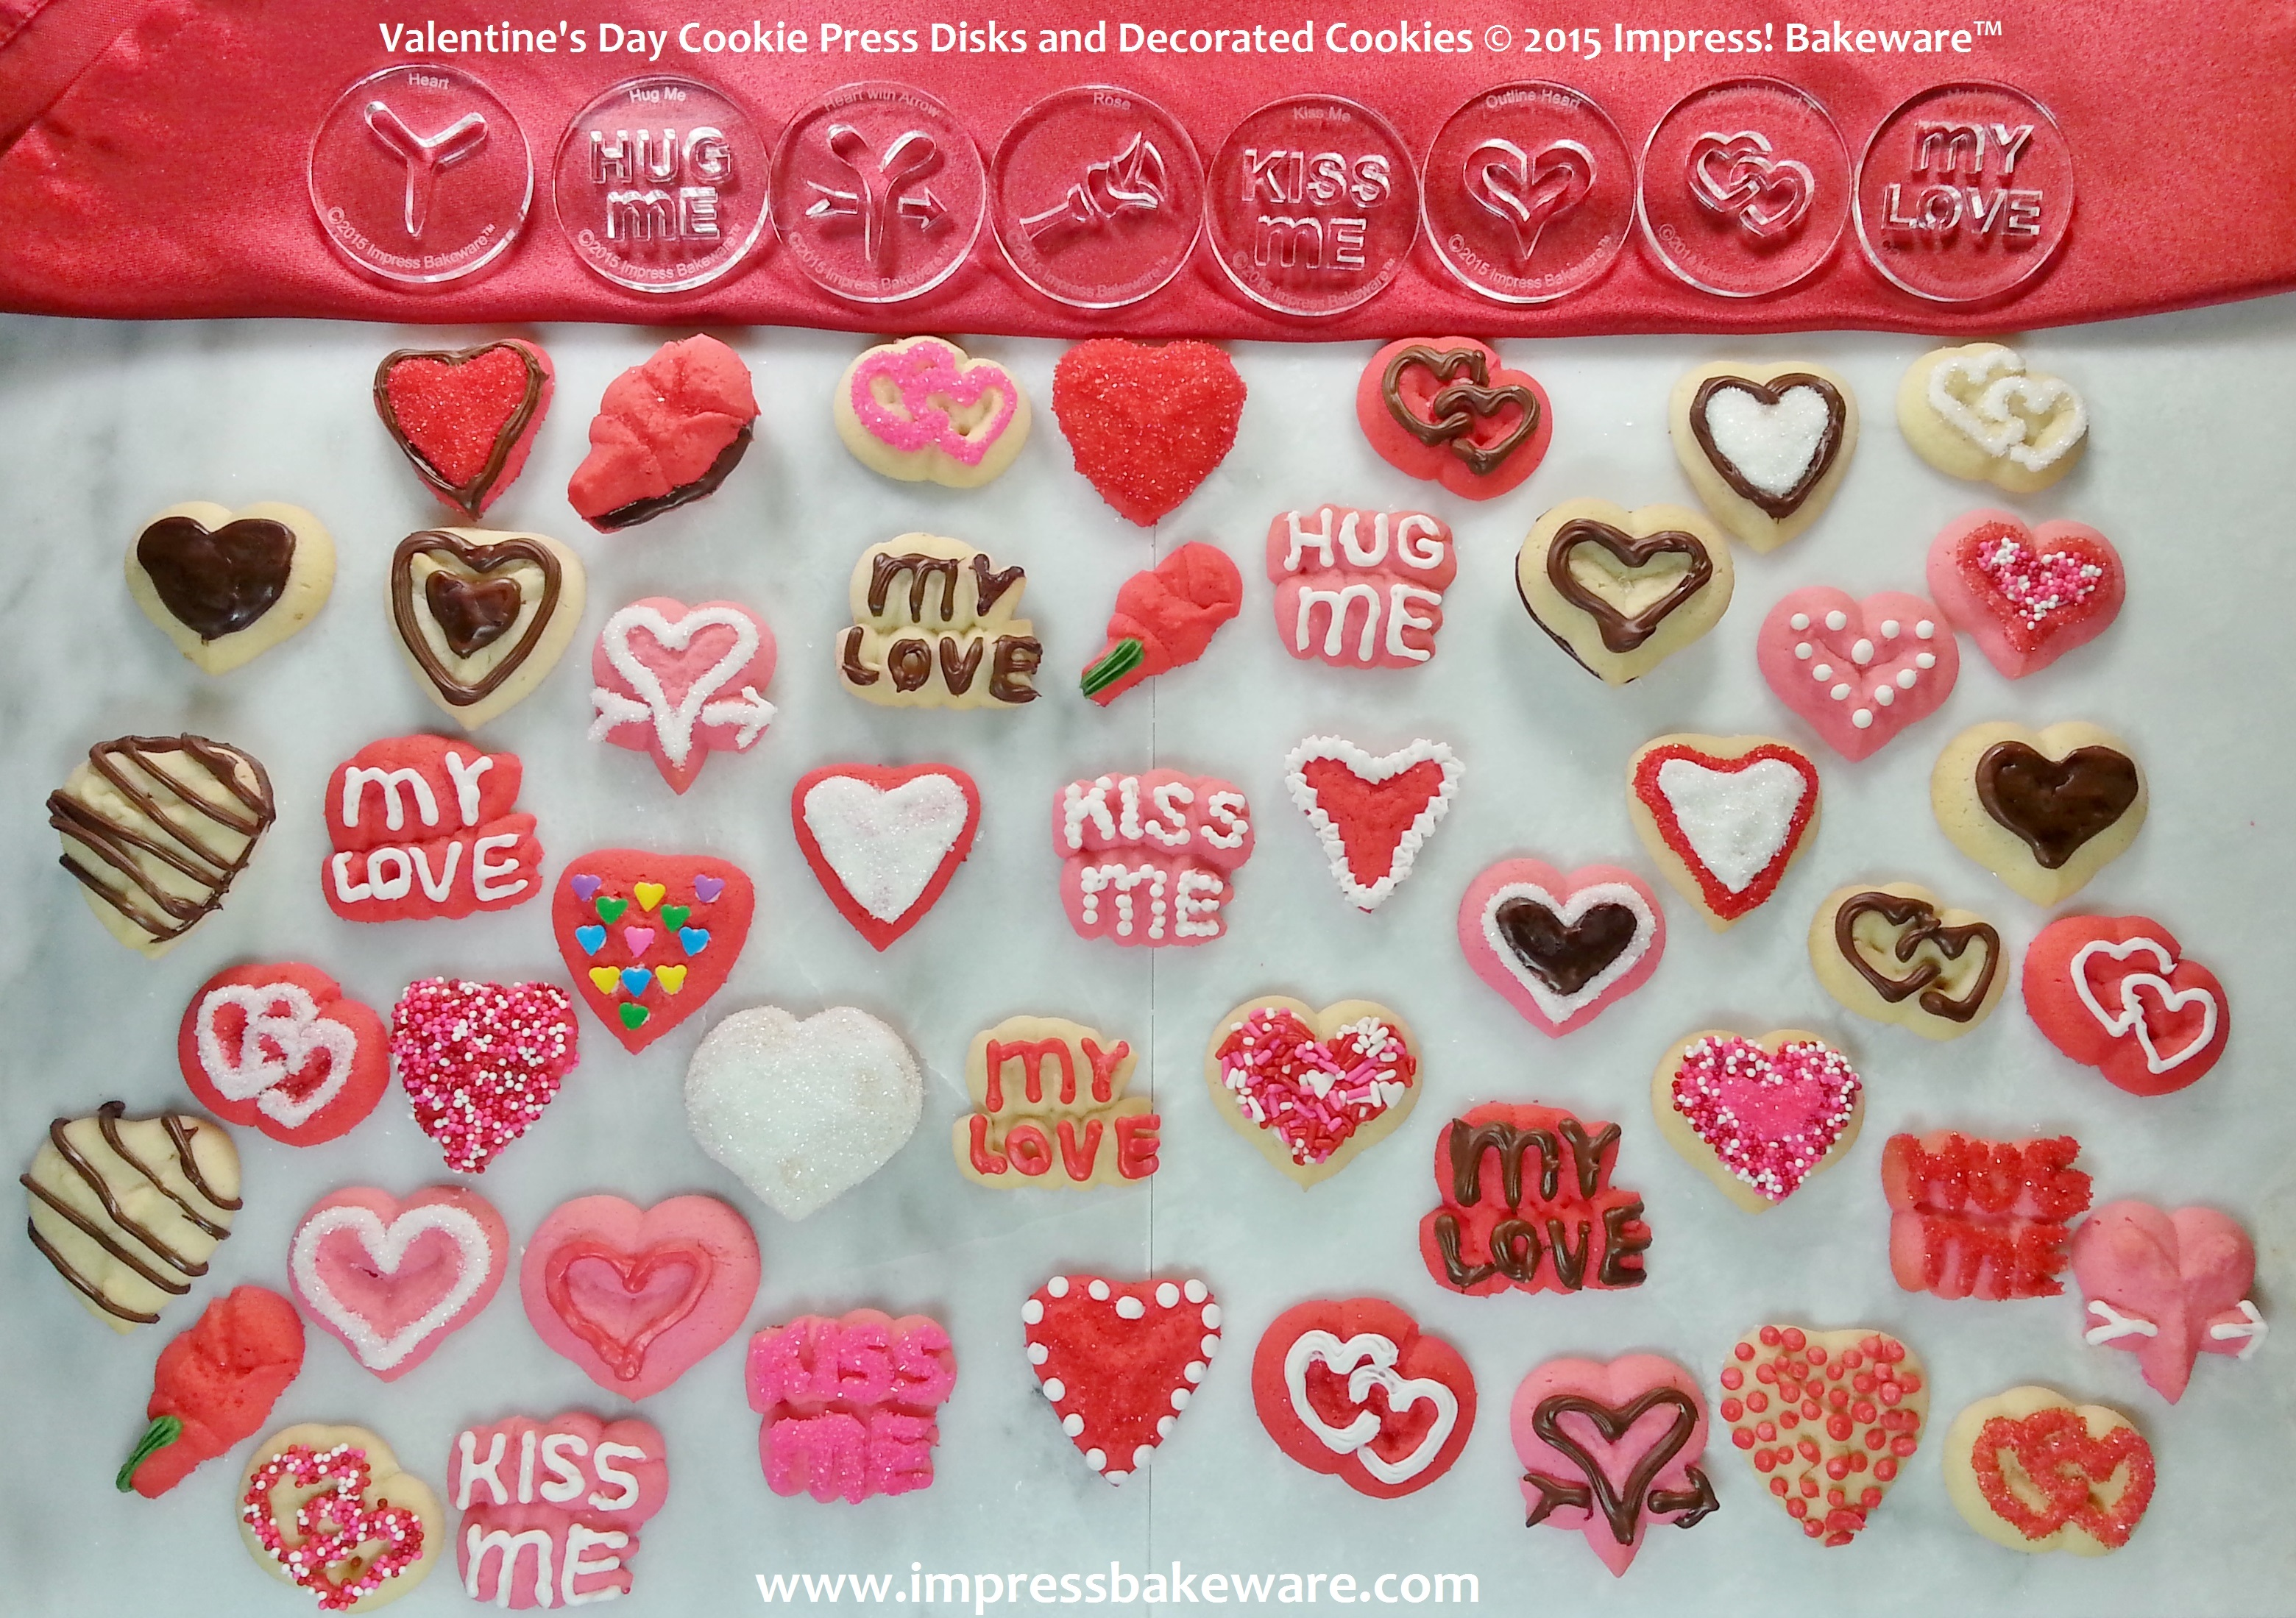 valentines day cookie press disks decorated cookies 2015 impress bakeware